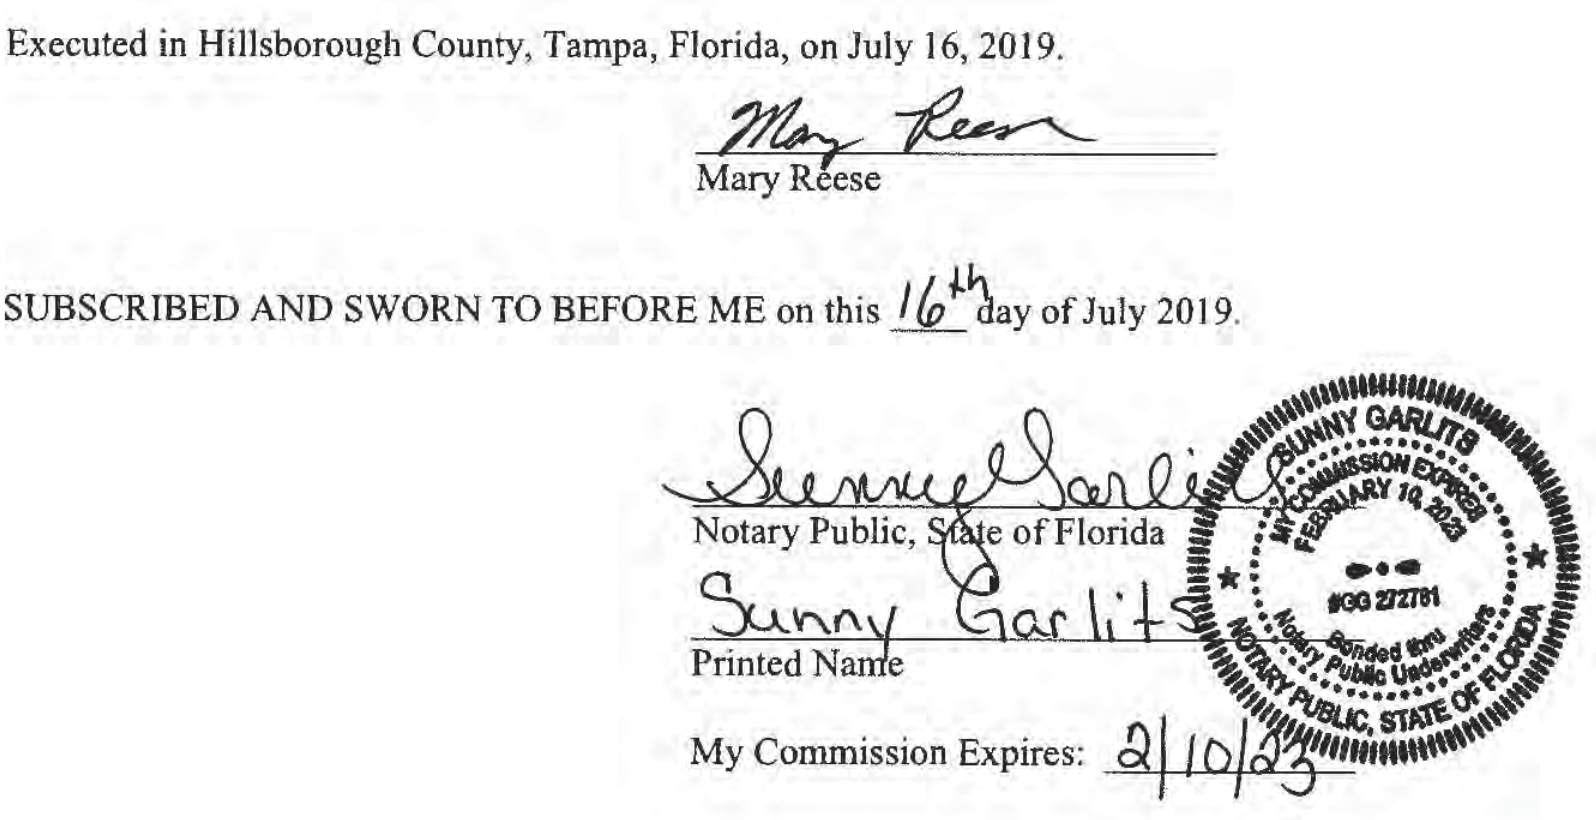 mary_reese_affidavit_date.png